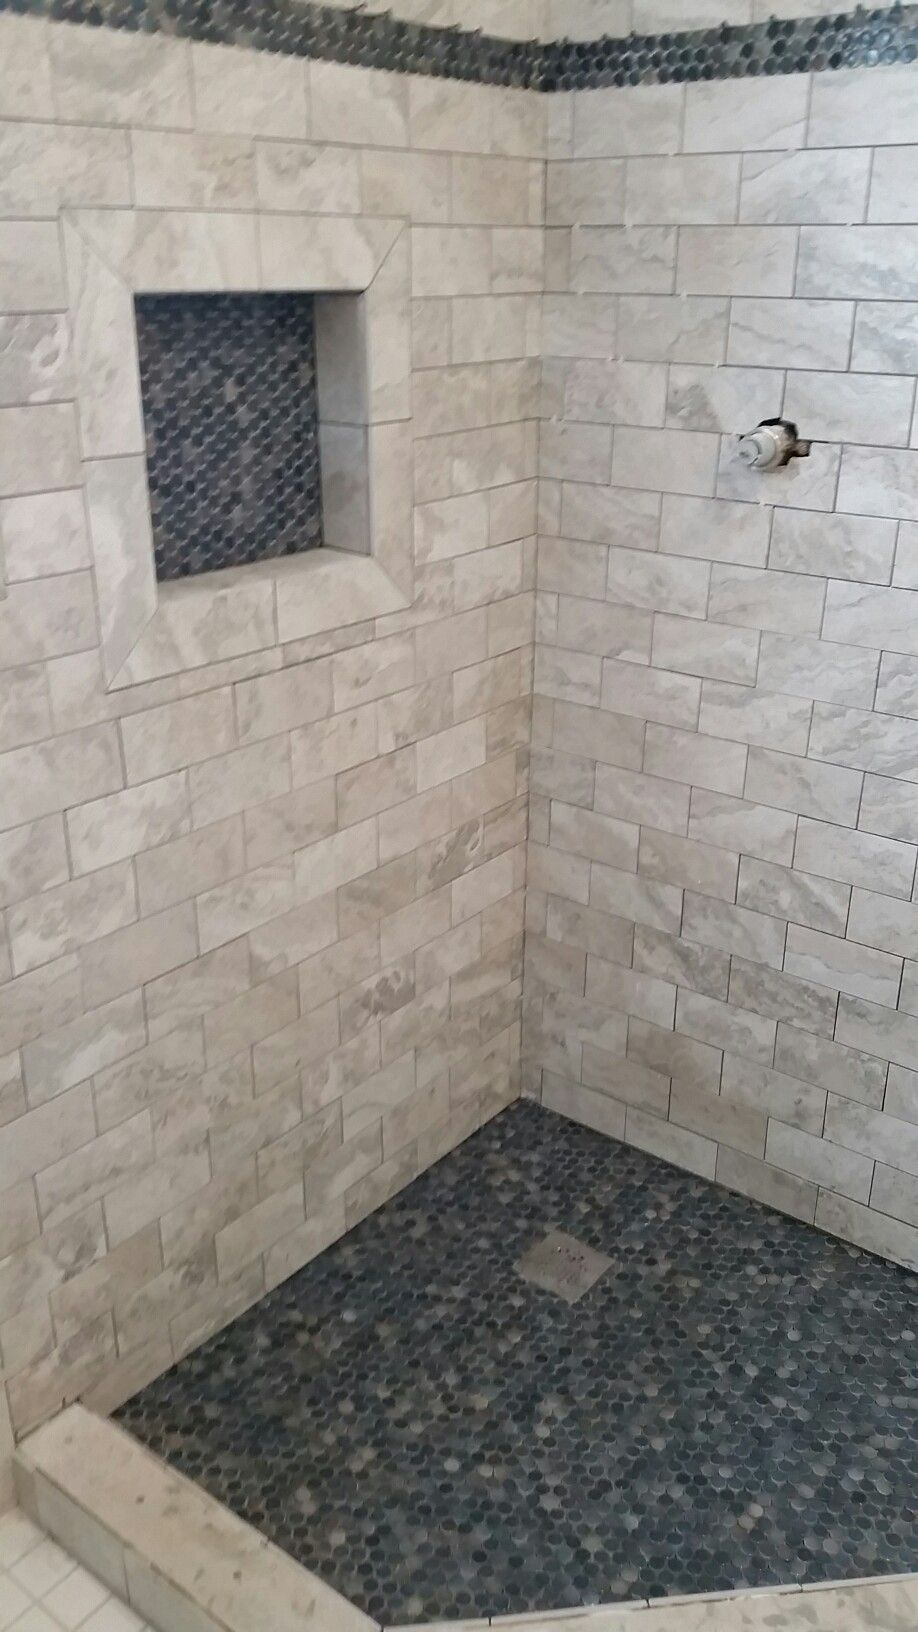 Wall Tile Is Brennero Thermae Pearl 3 X 6 1 2 Floor Insert And Border Tile Is Shower Stall Shower Design Bathrooms Remodel